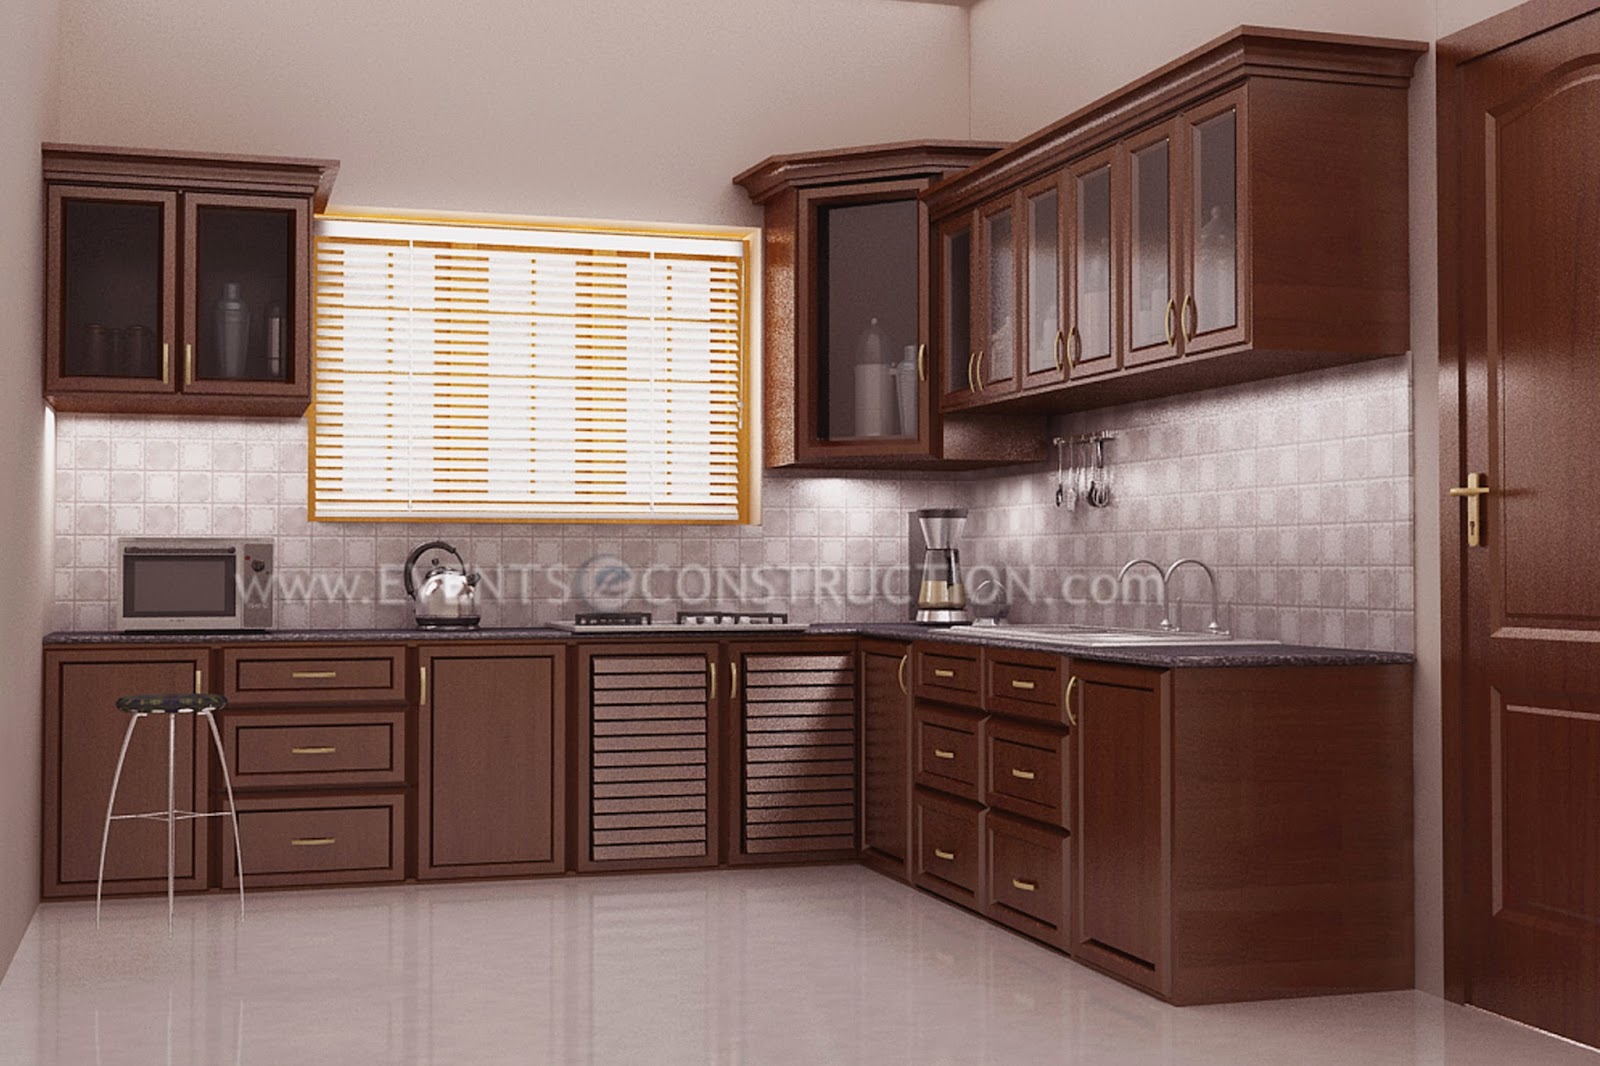 kitchen cabinet design in kerala evens construction pvt ltd kitchen design with wooden 989